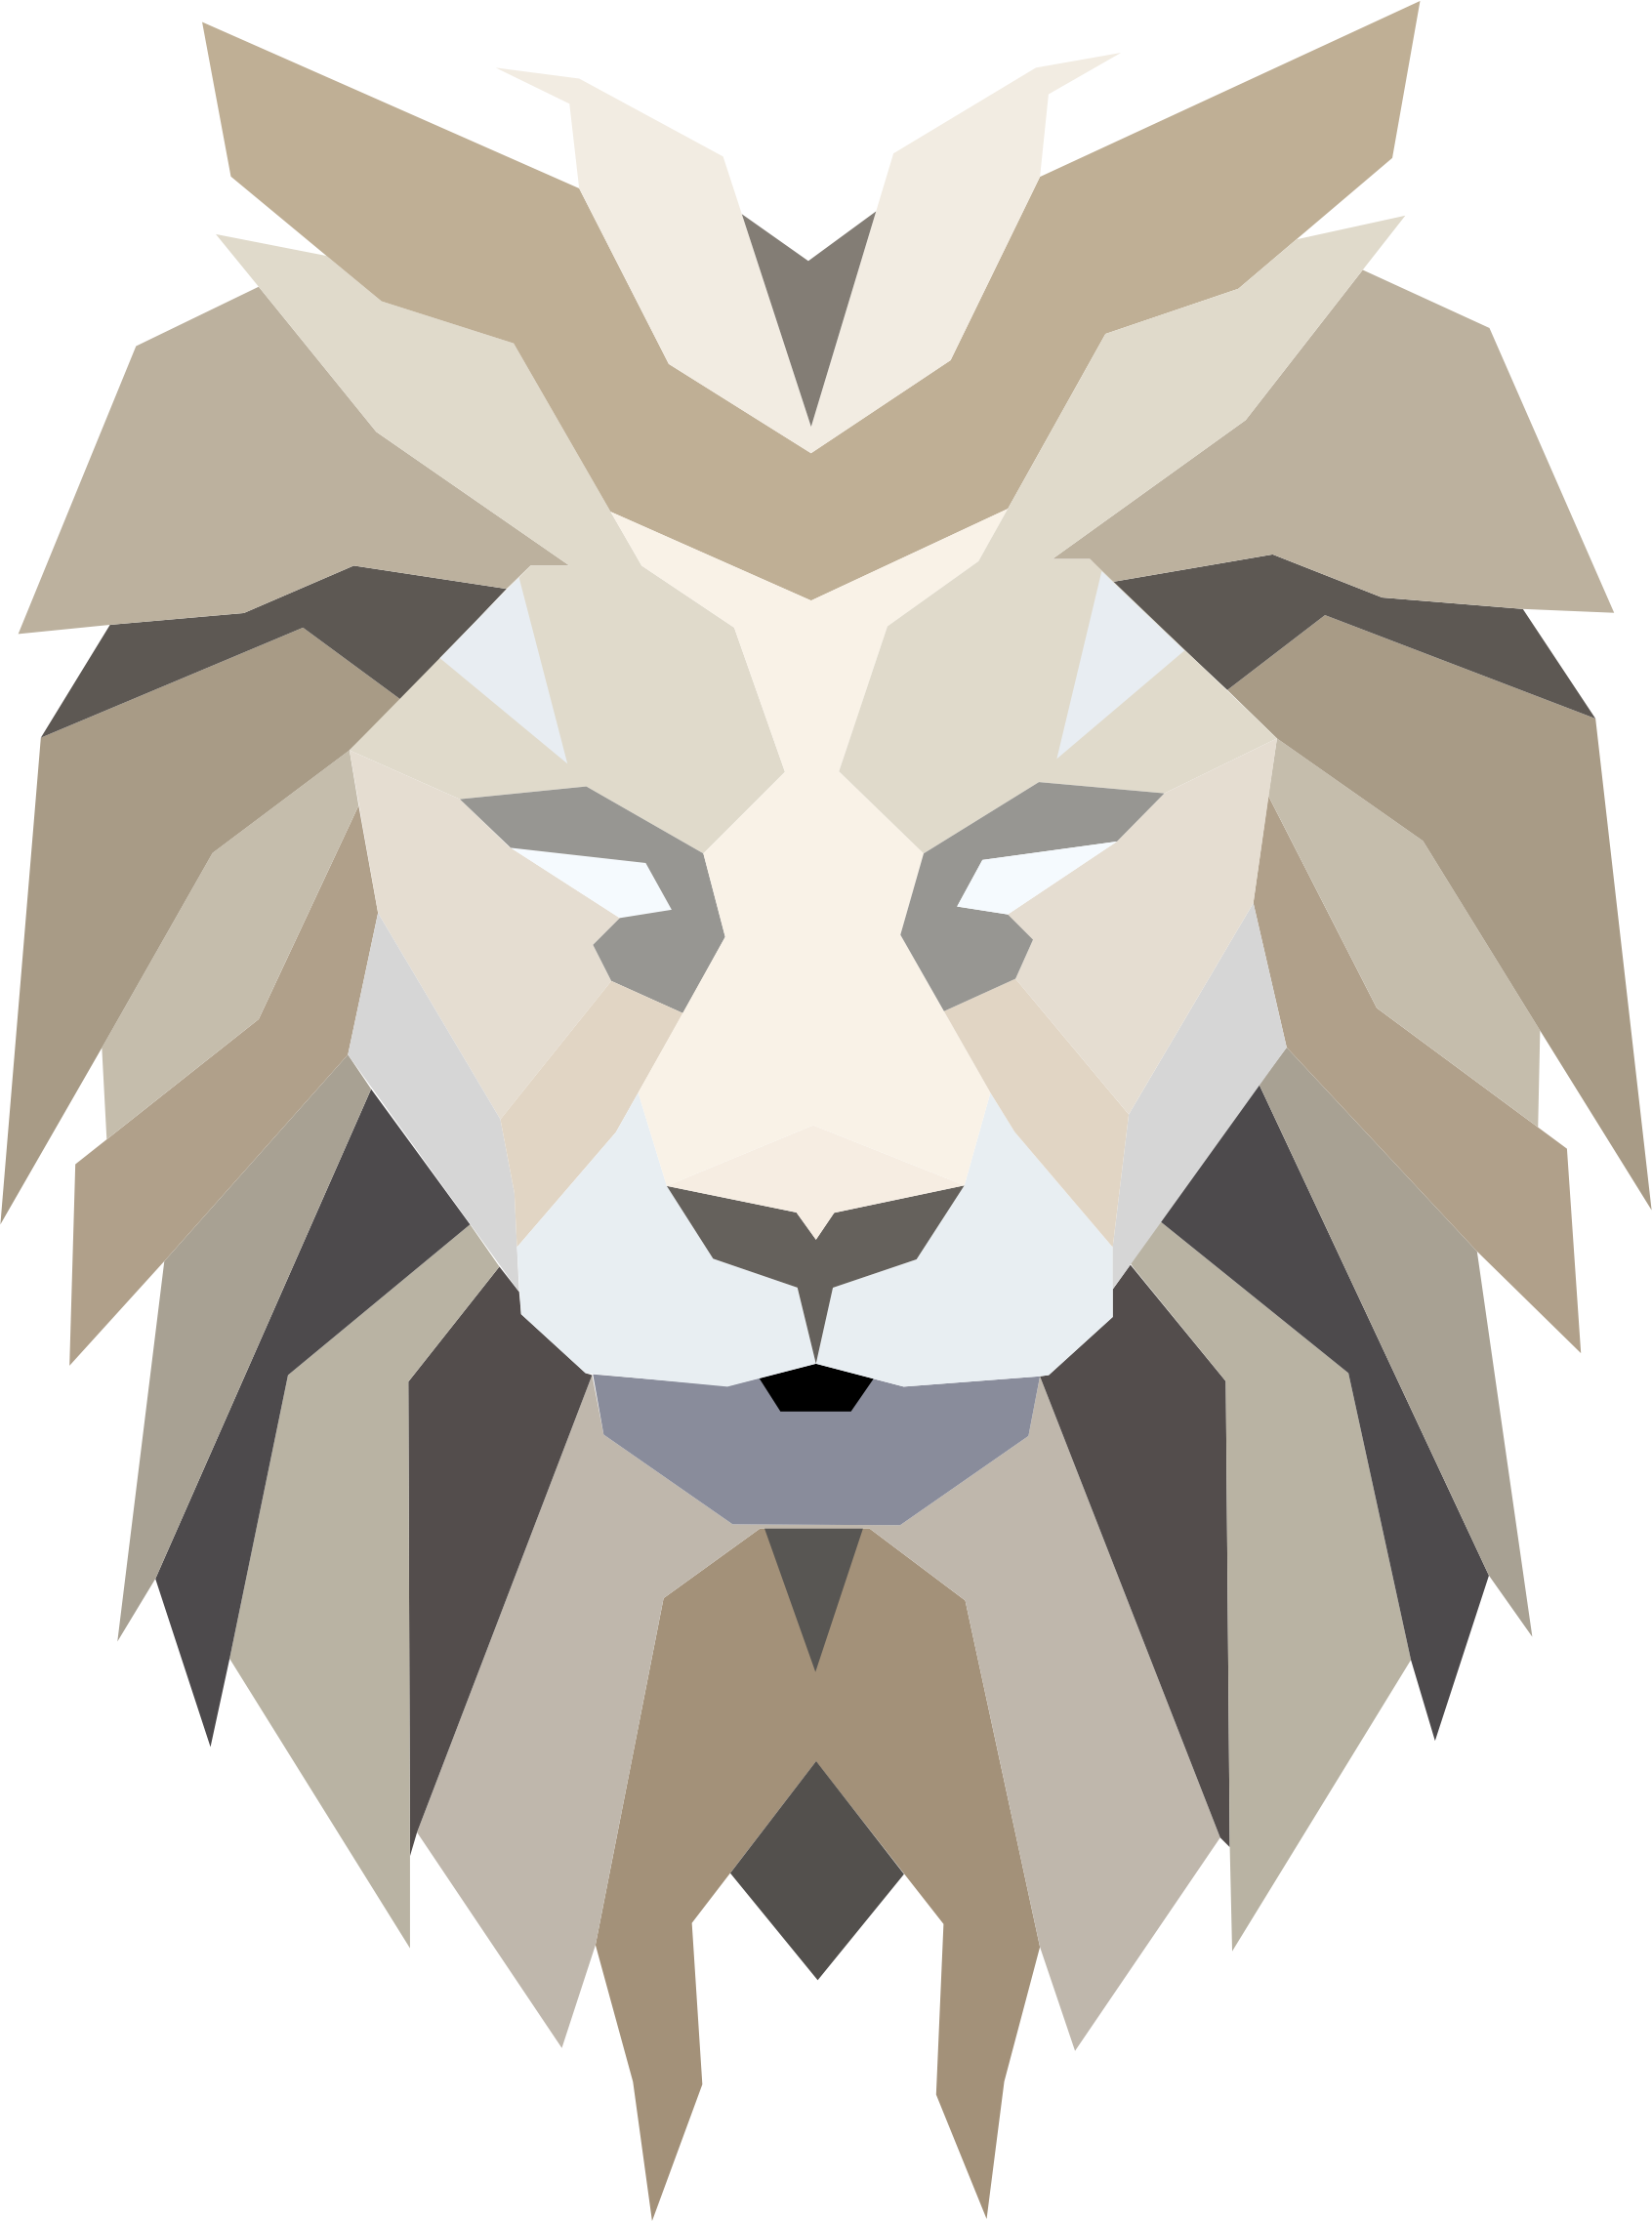 Abstract animal png. Lions clipart for free